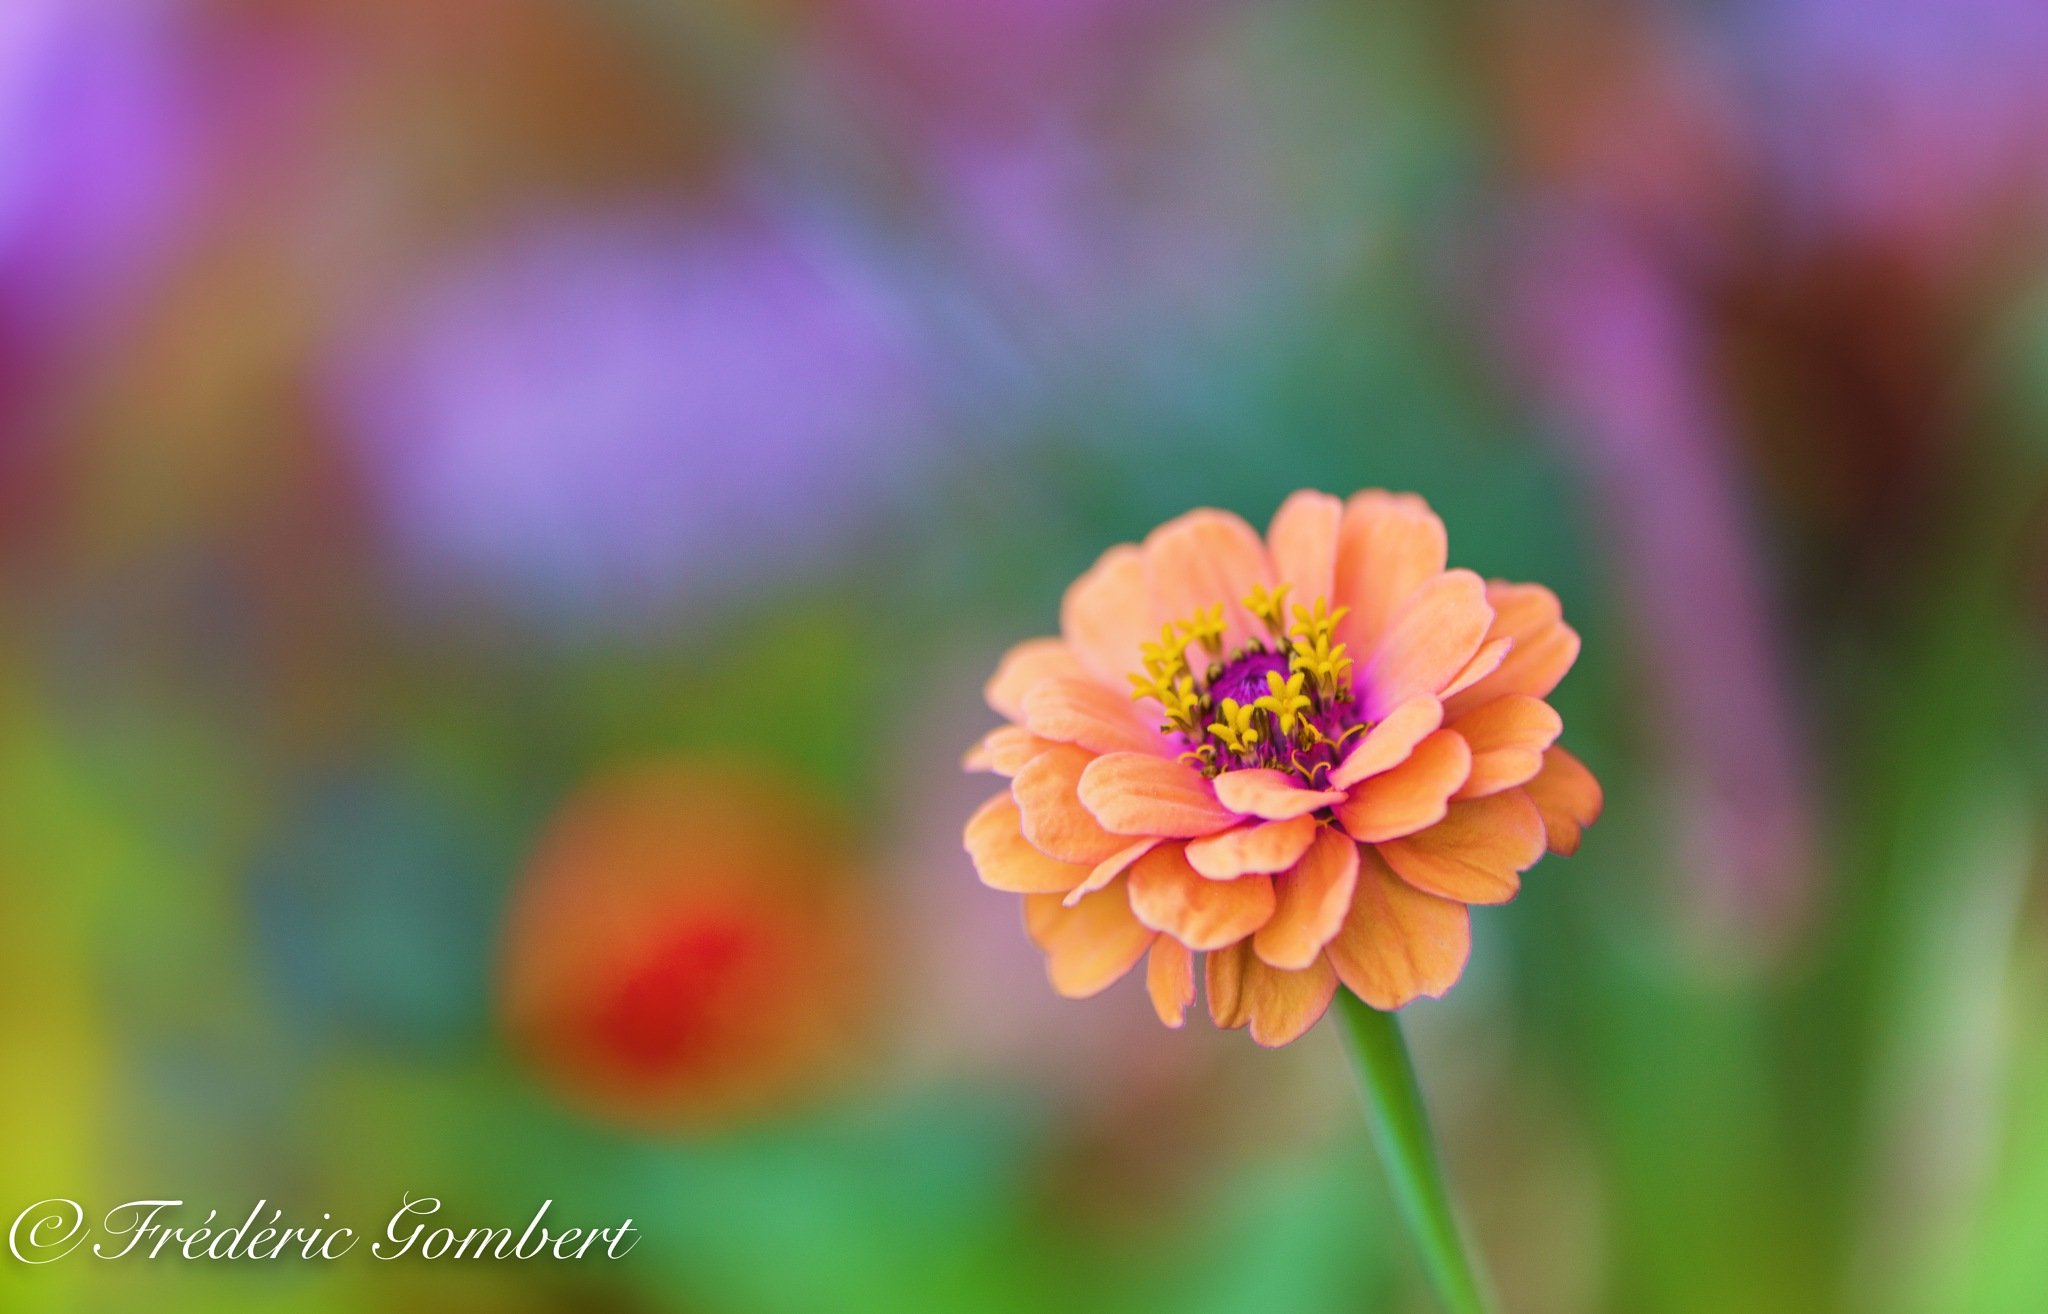 colors of Sun by Frederic Gombert